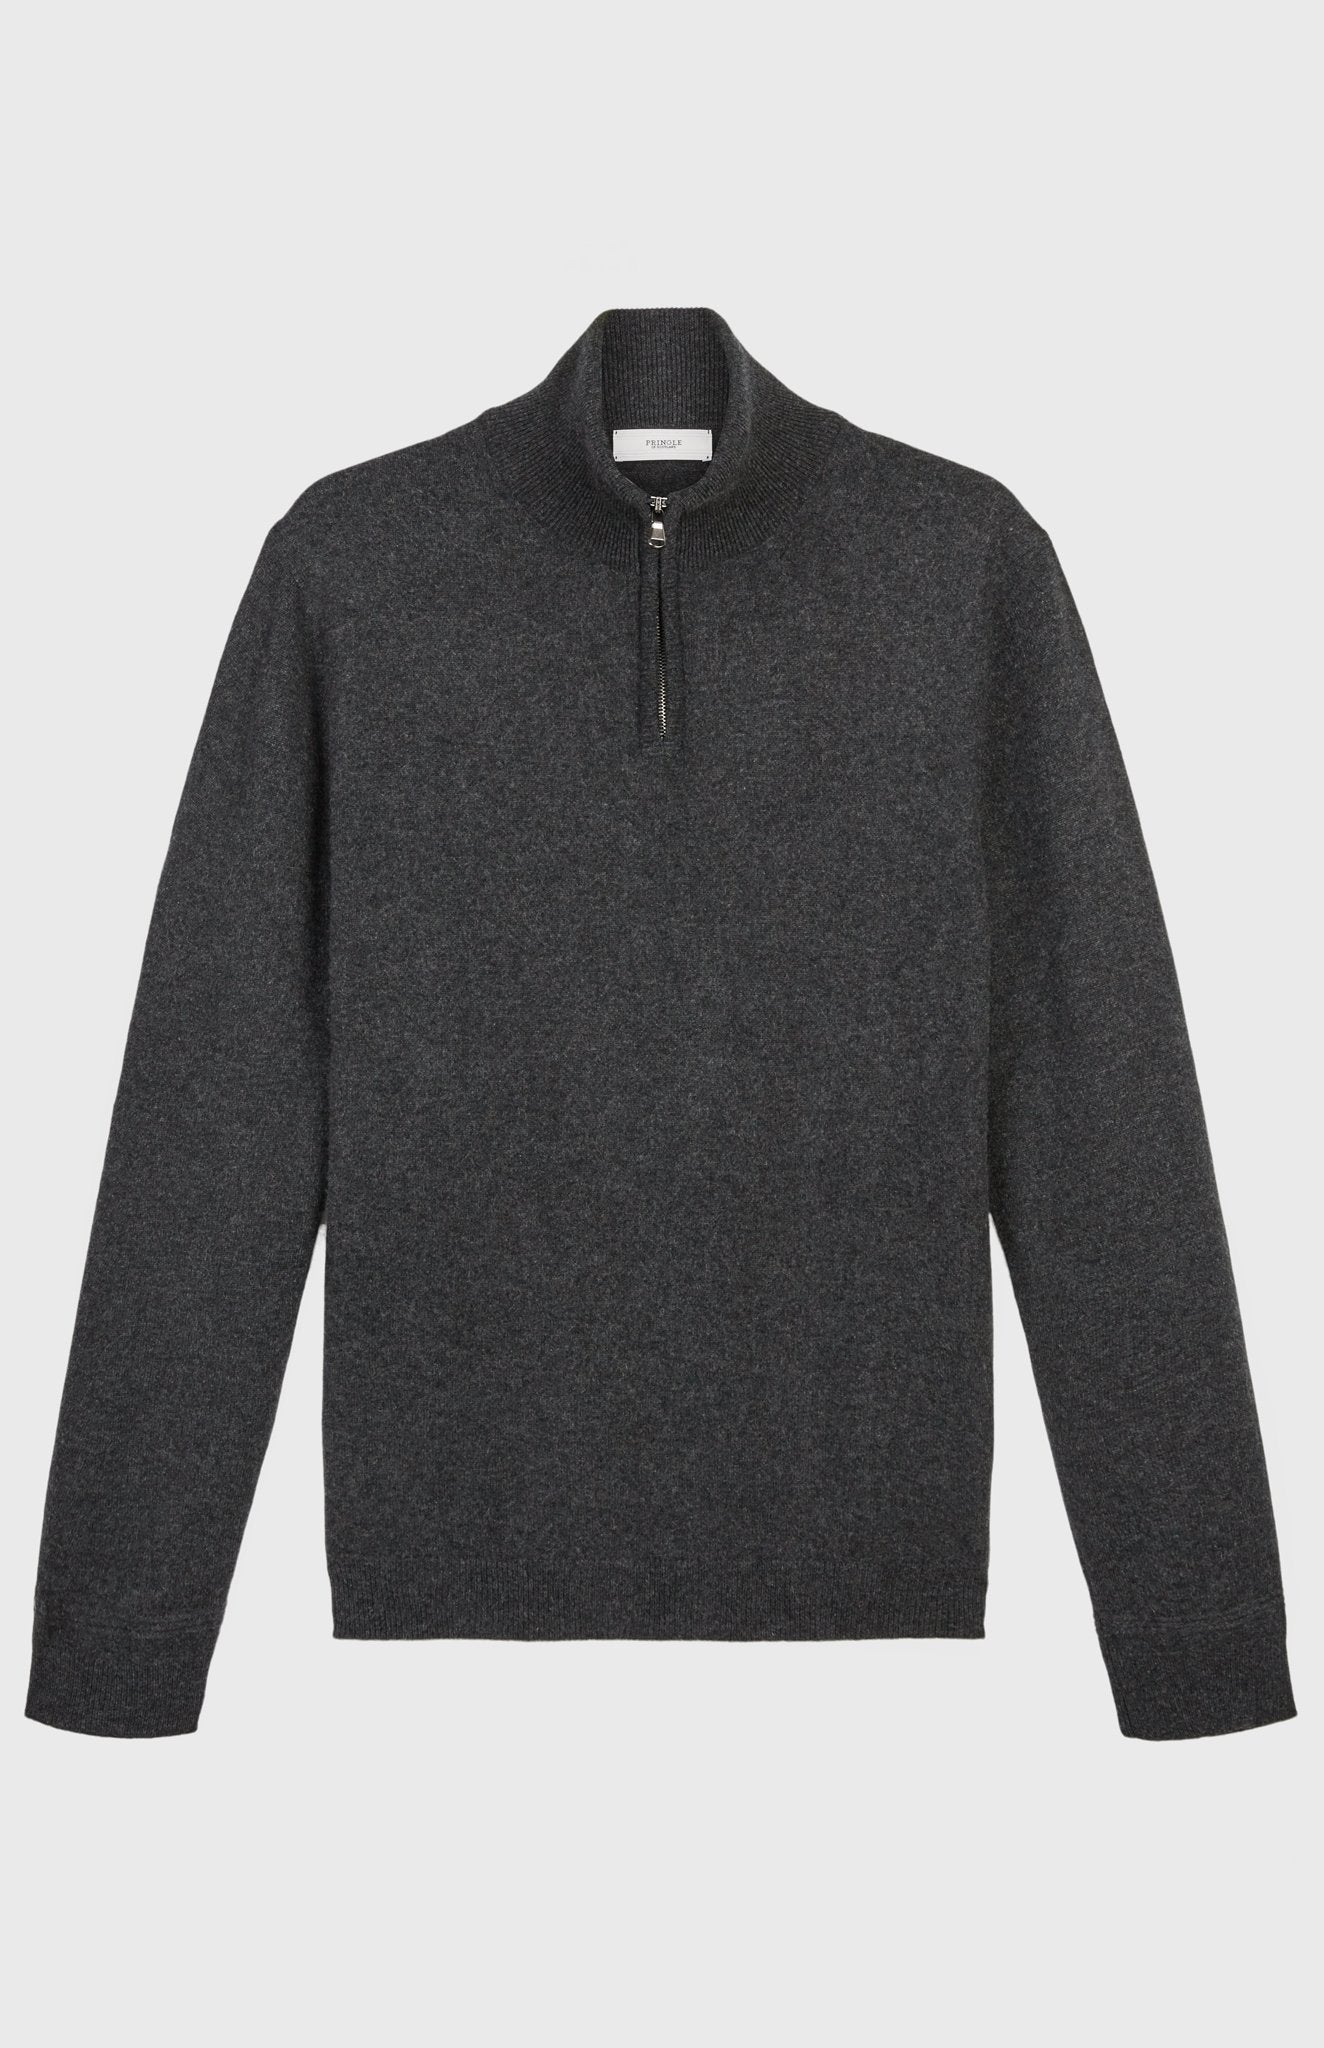 Zip Neck Cashmere Jumper In Charcoal